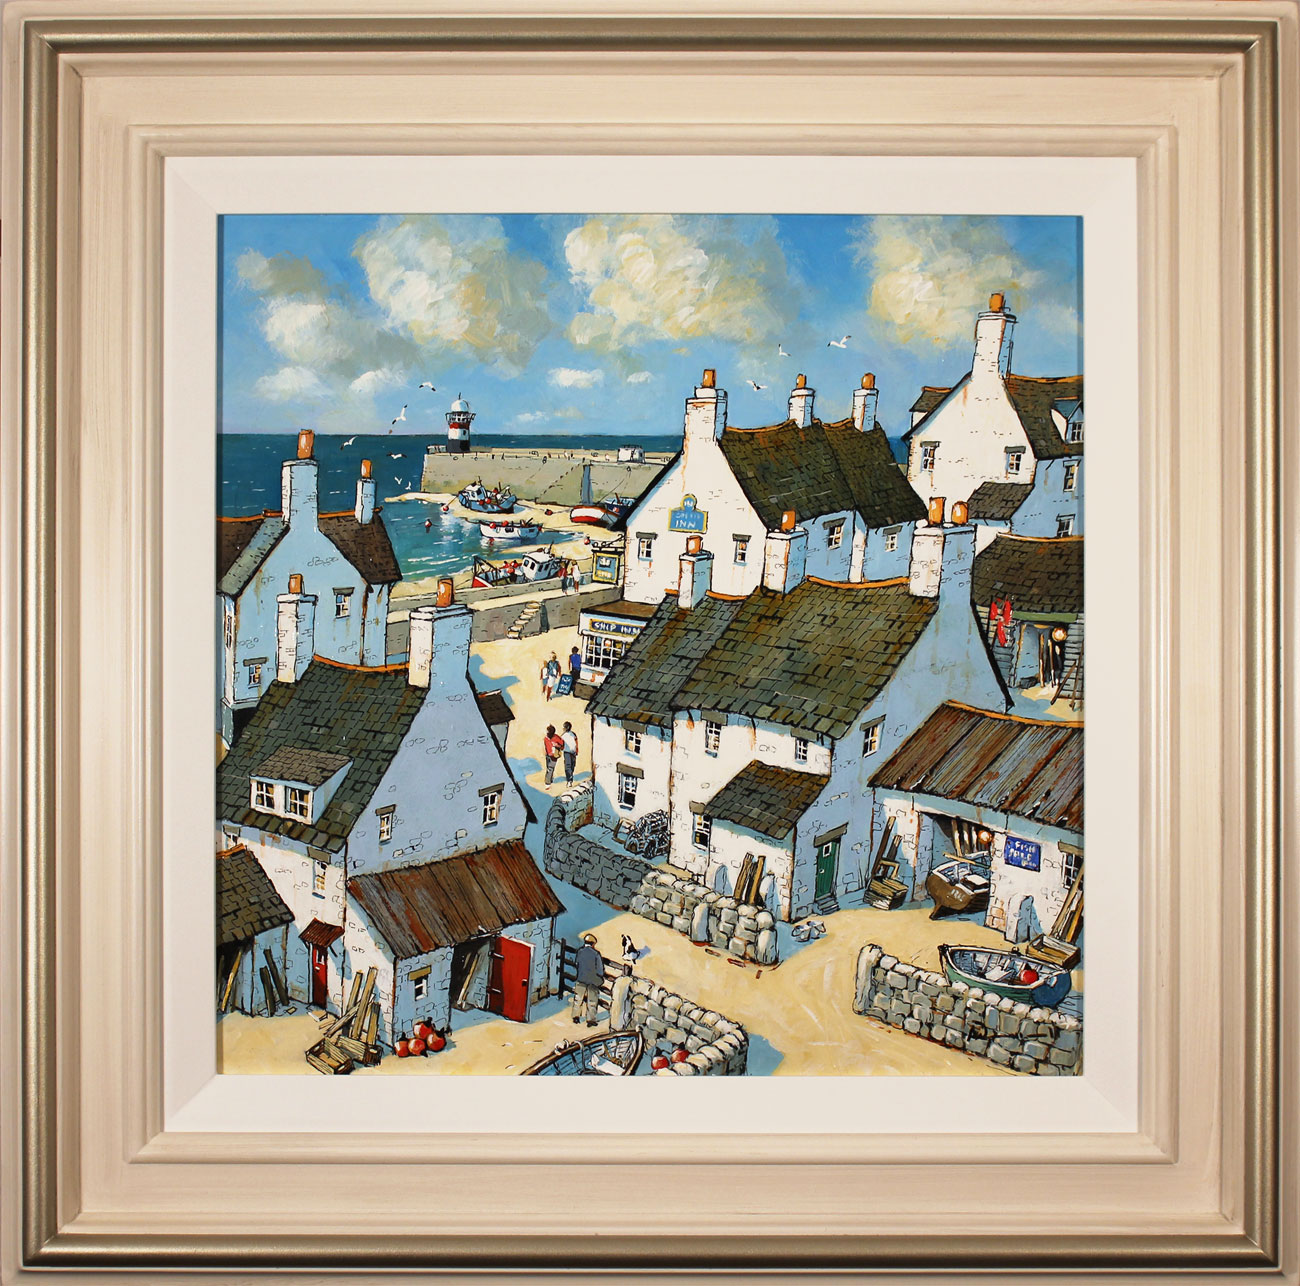 Alan Smith, Original oil painting on panel, Sights of the Harbour Click to enlarge